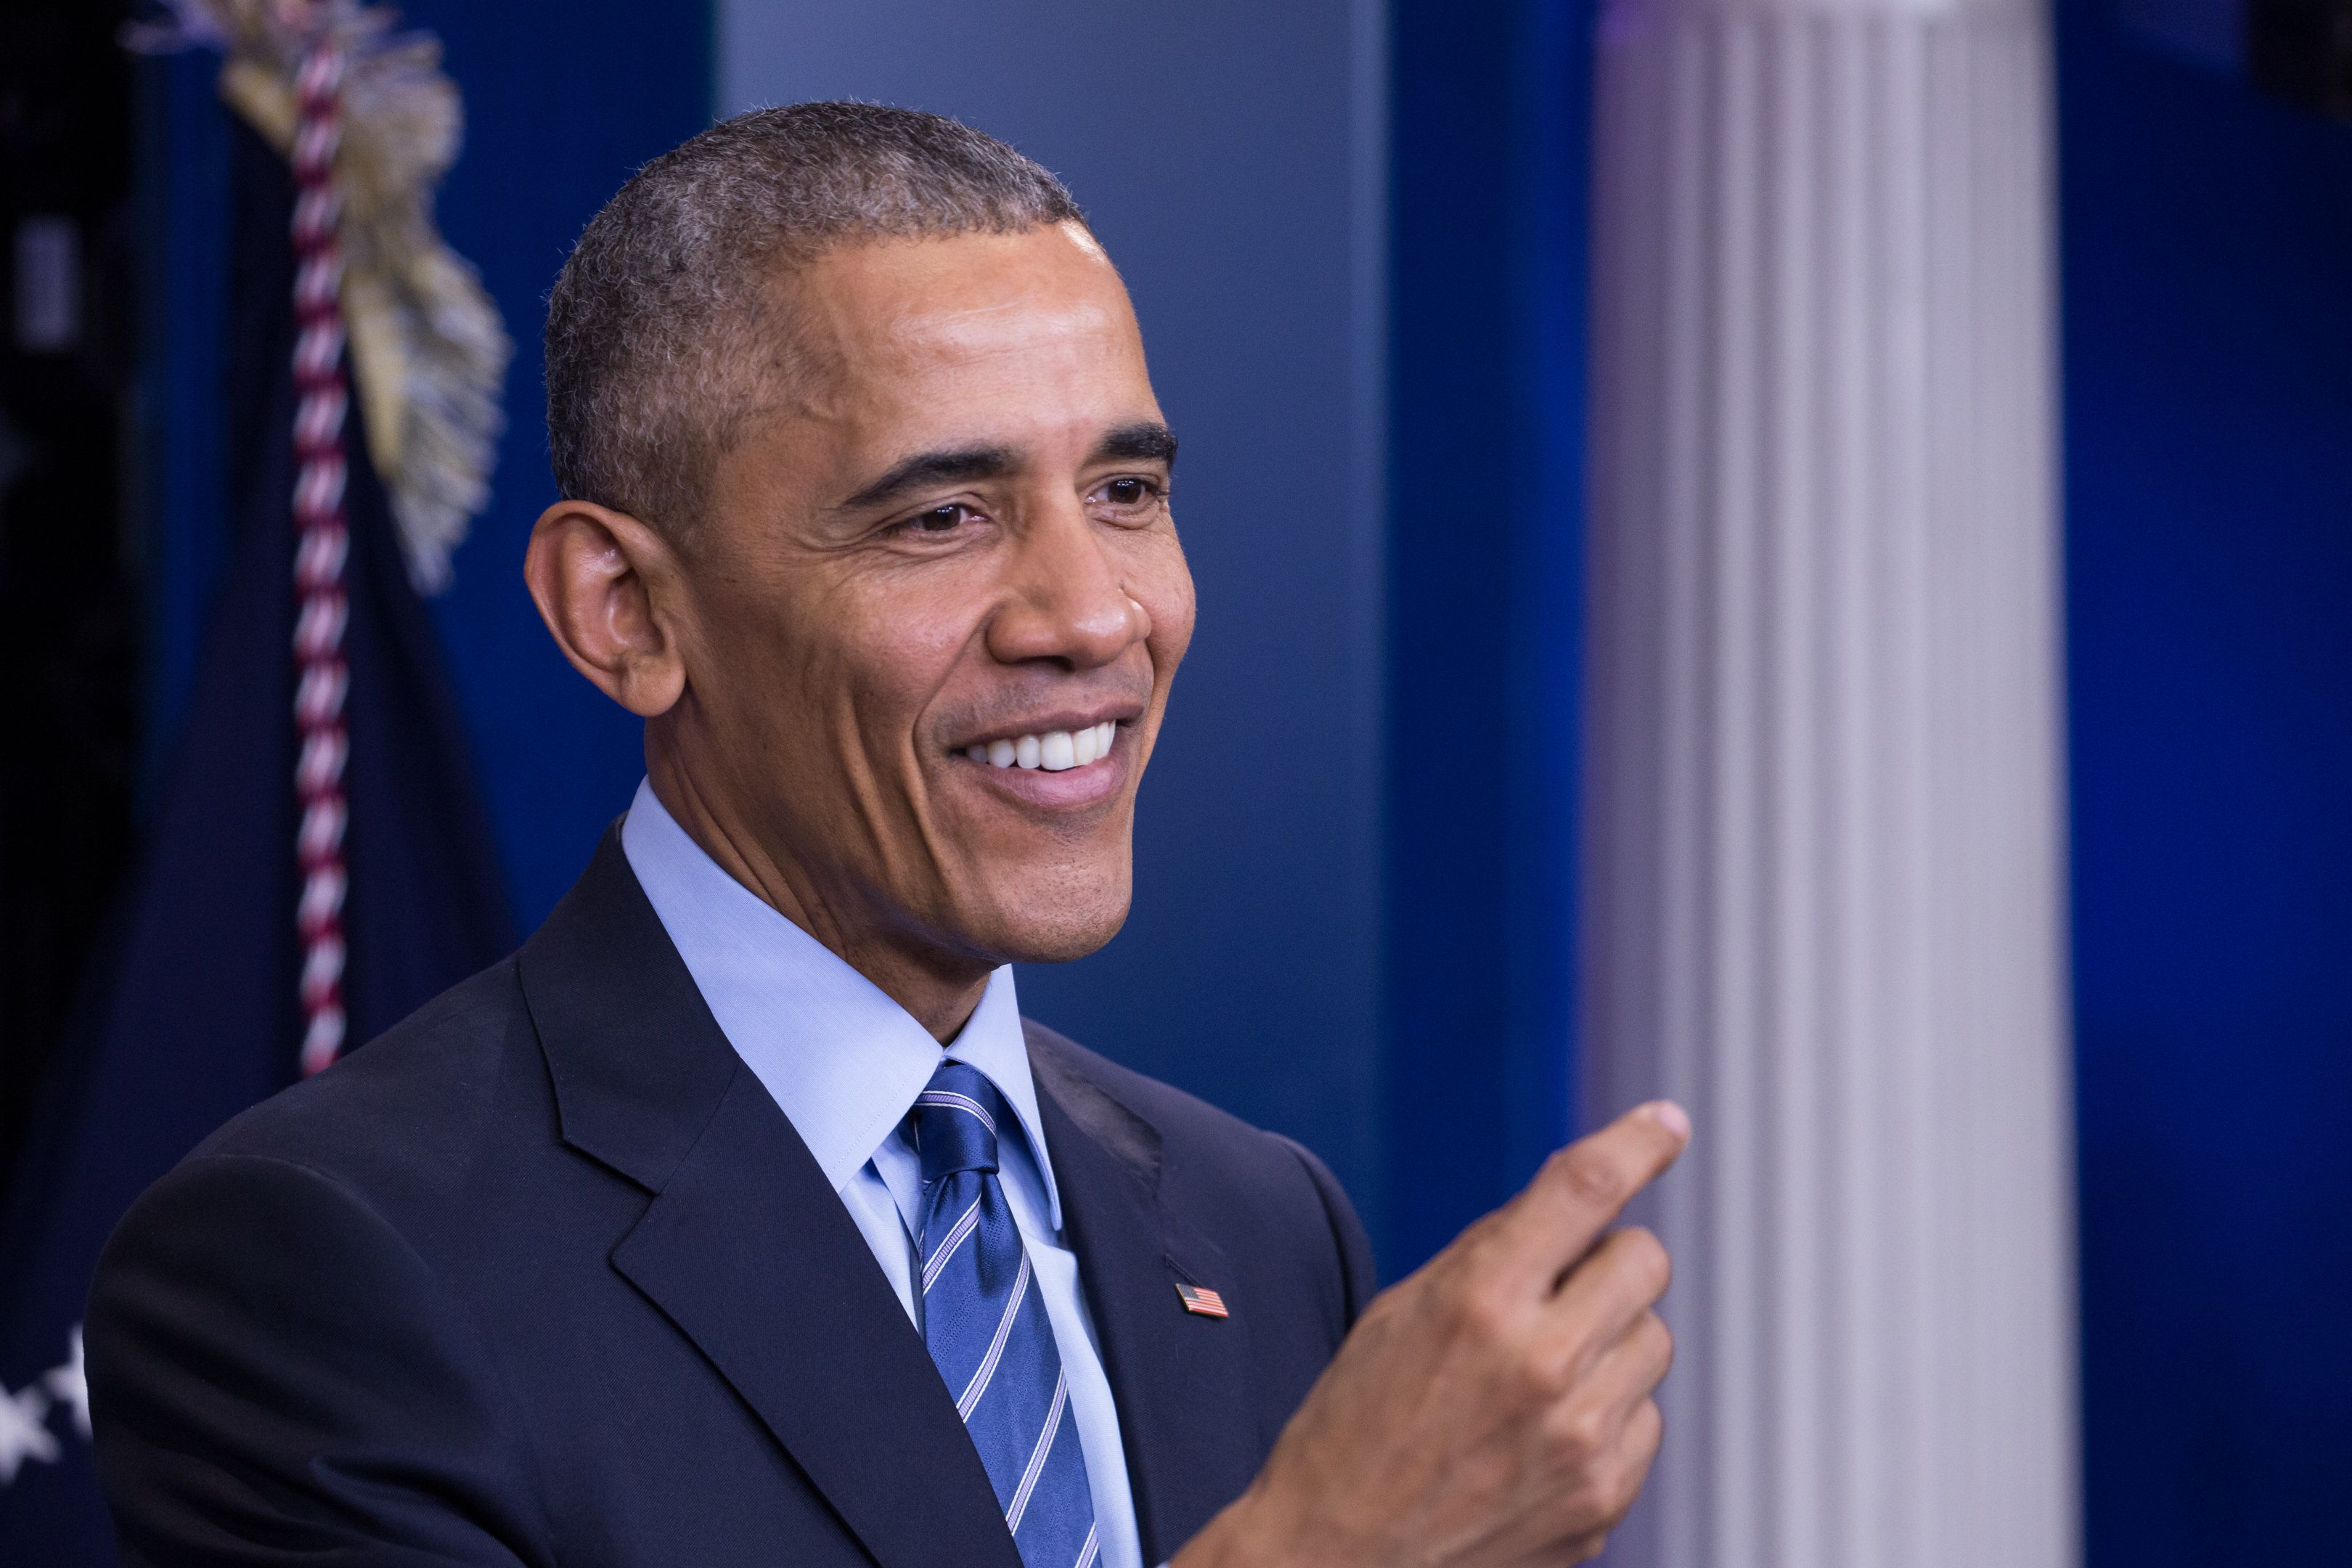 US President Barack Obama  gave his last press briefing and answered questions from reporters, in the Brady Press Briefing Room of the White House in Washington, DC, December 16, 2016. Obama on Friday warned his successor Donald Trump against antagonizing China by reaching out to Taiwan, saying he could risk a 'very significant' response if he upends decades of diplomatic tradition. (Photo by Cheriss May/NurPhoto via Getty Images)